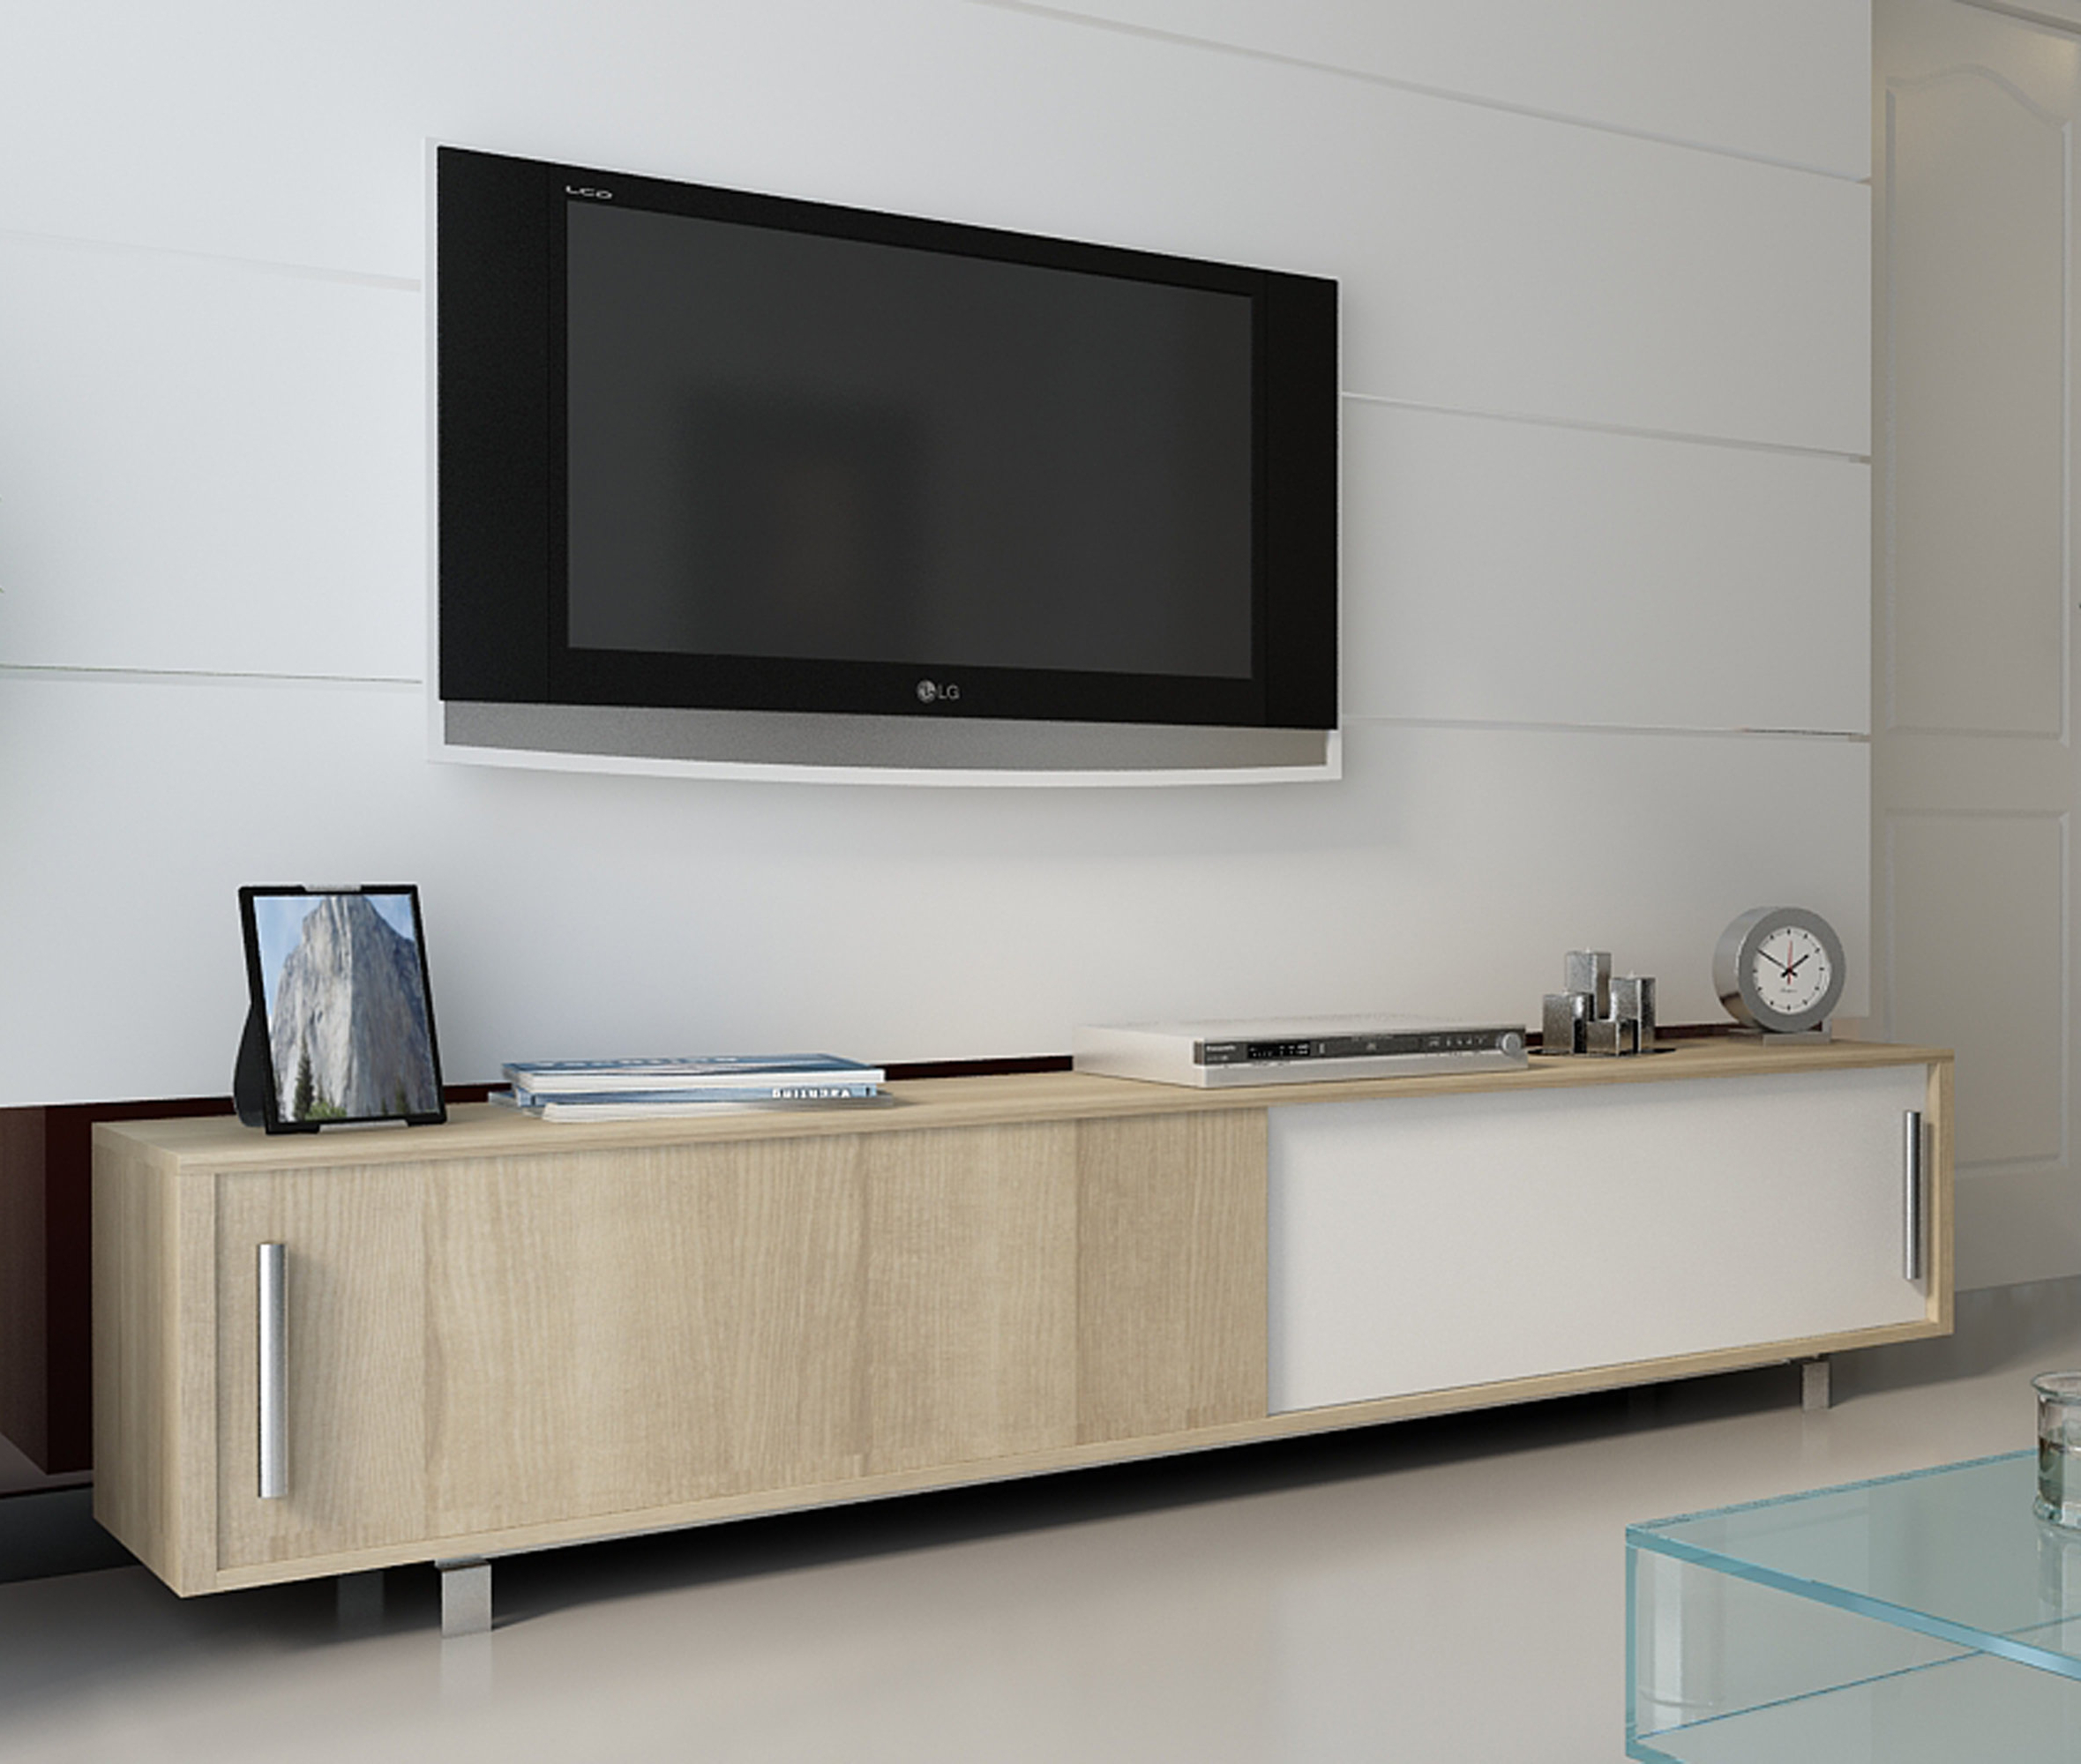 Allmodern Pertaining To Most Up To Date Modern Tv Stands For Flat Screens (View 3 of 20)